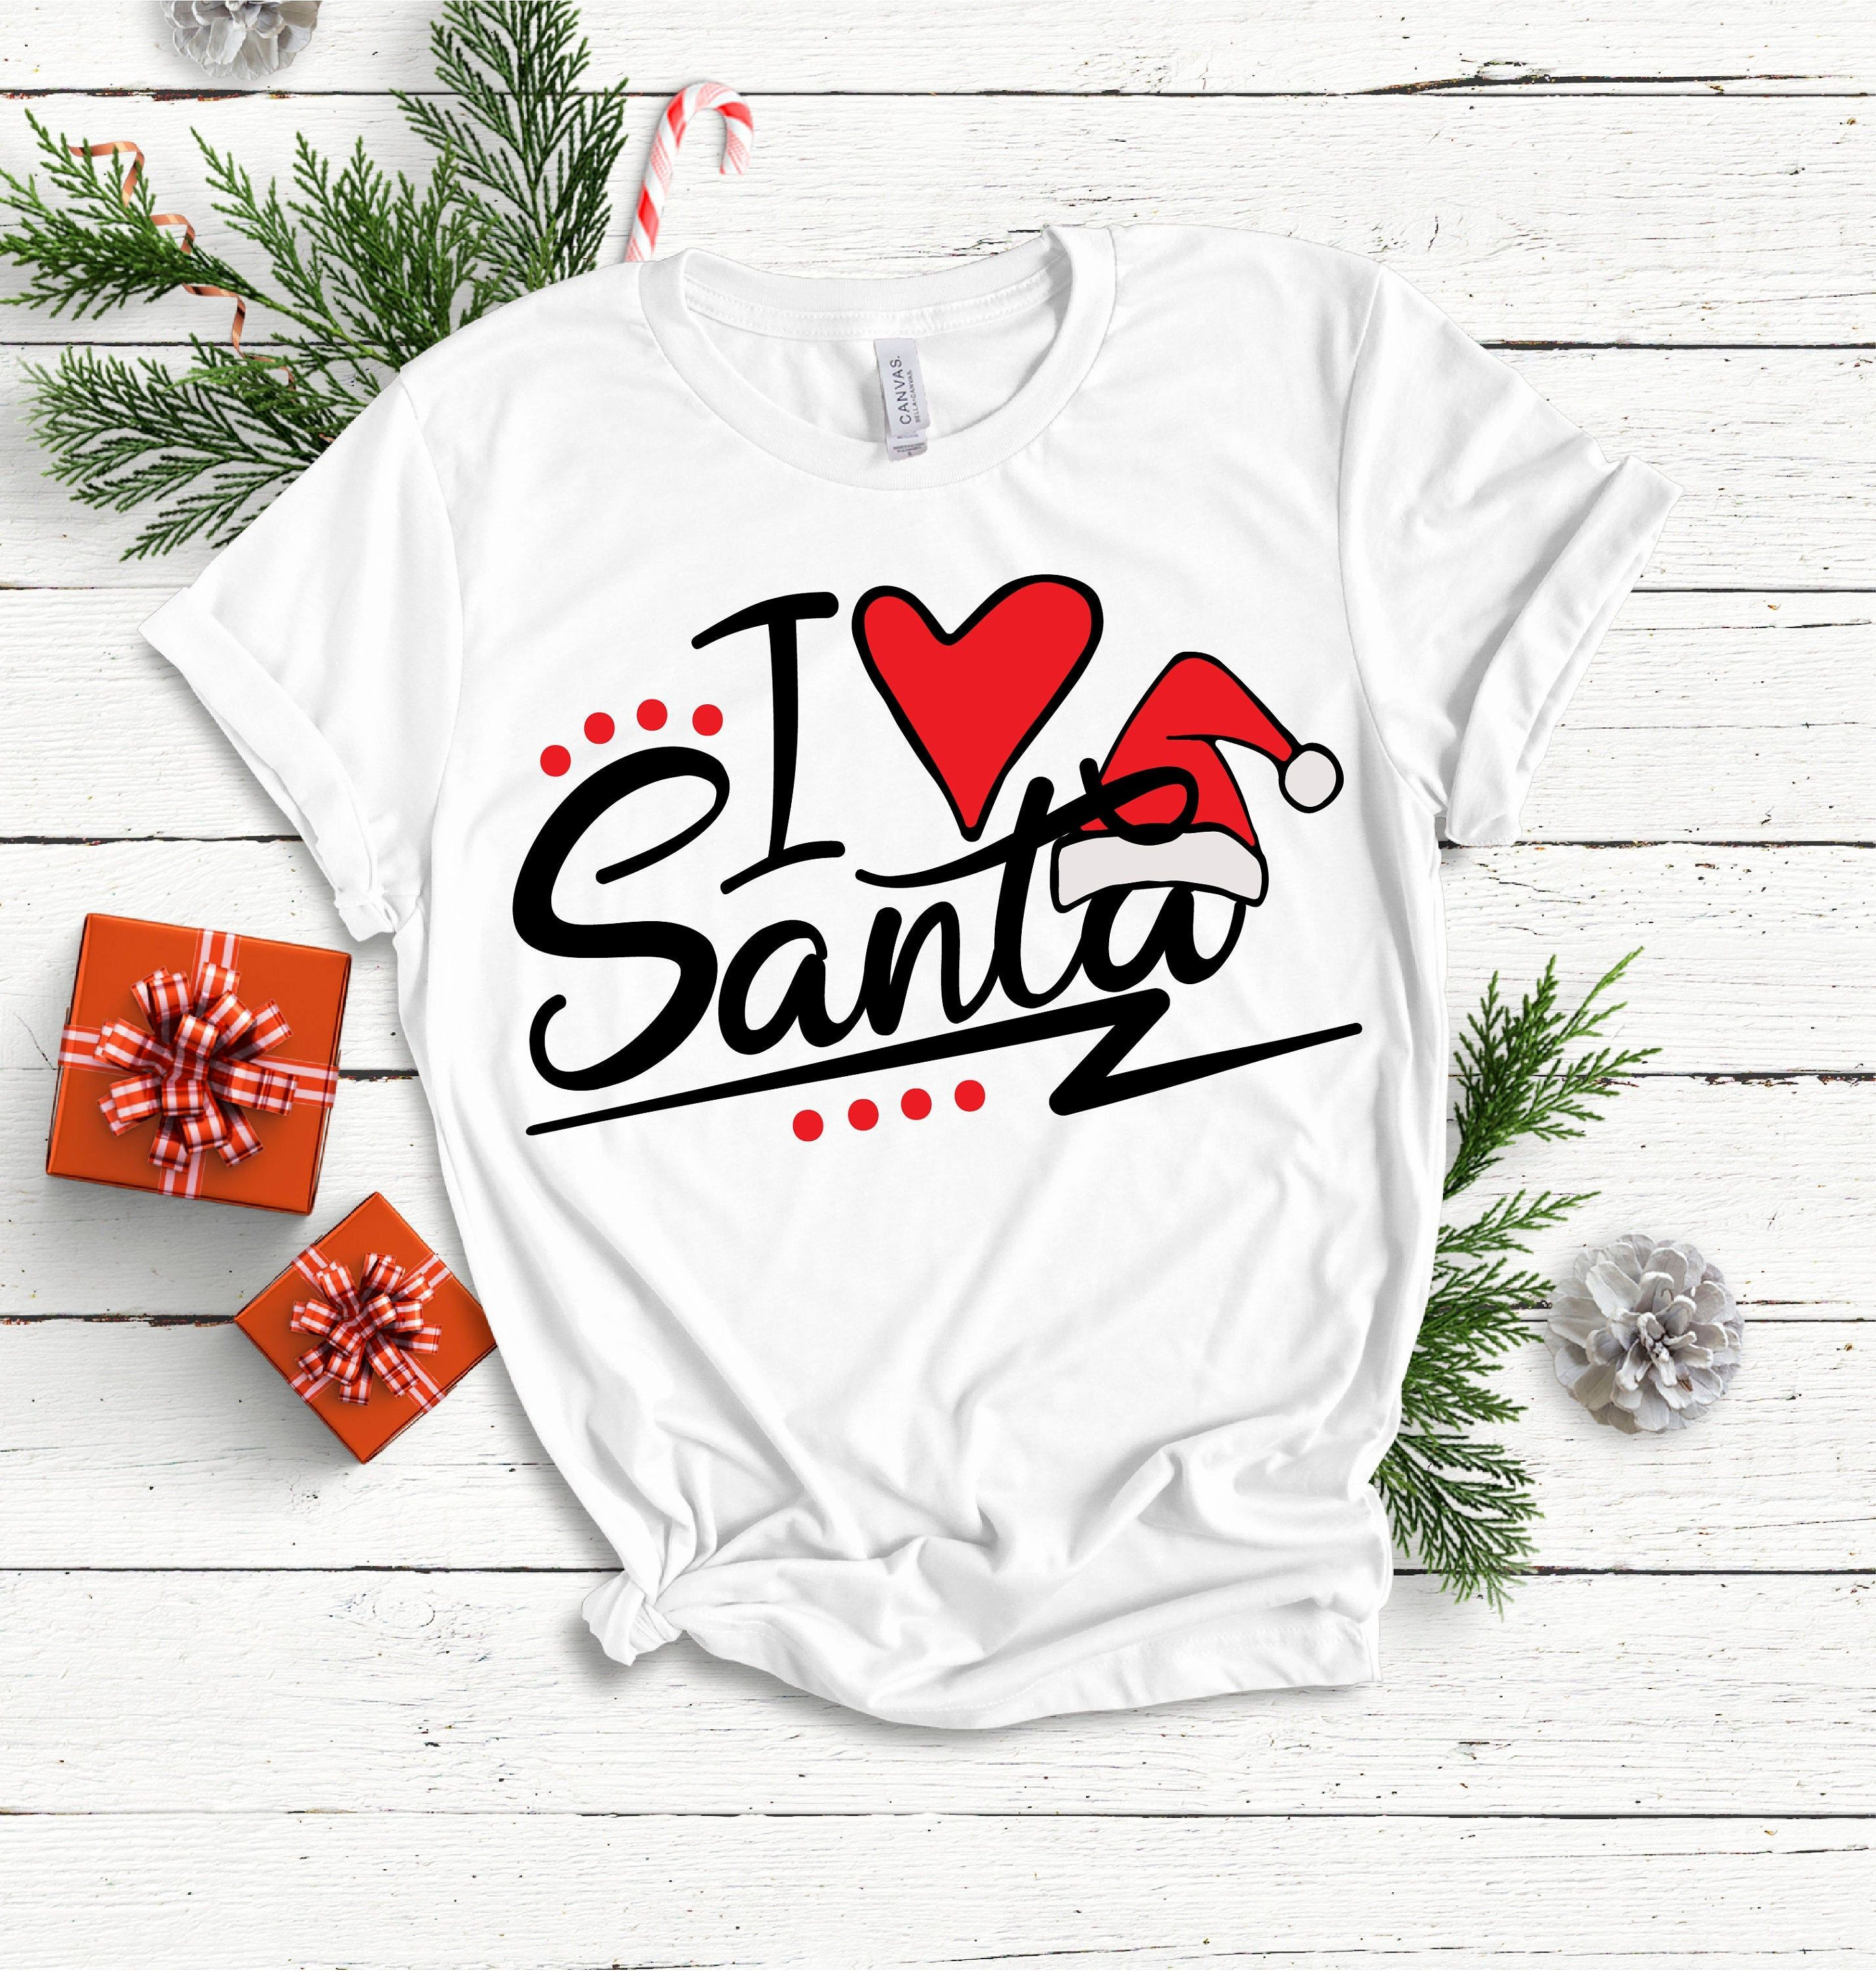 I love Santa SVG, SVG files,Christmas SVG, Cricut files